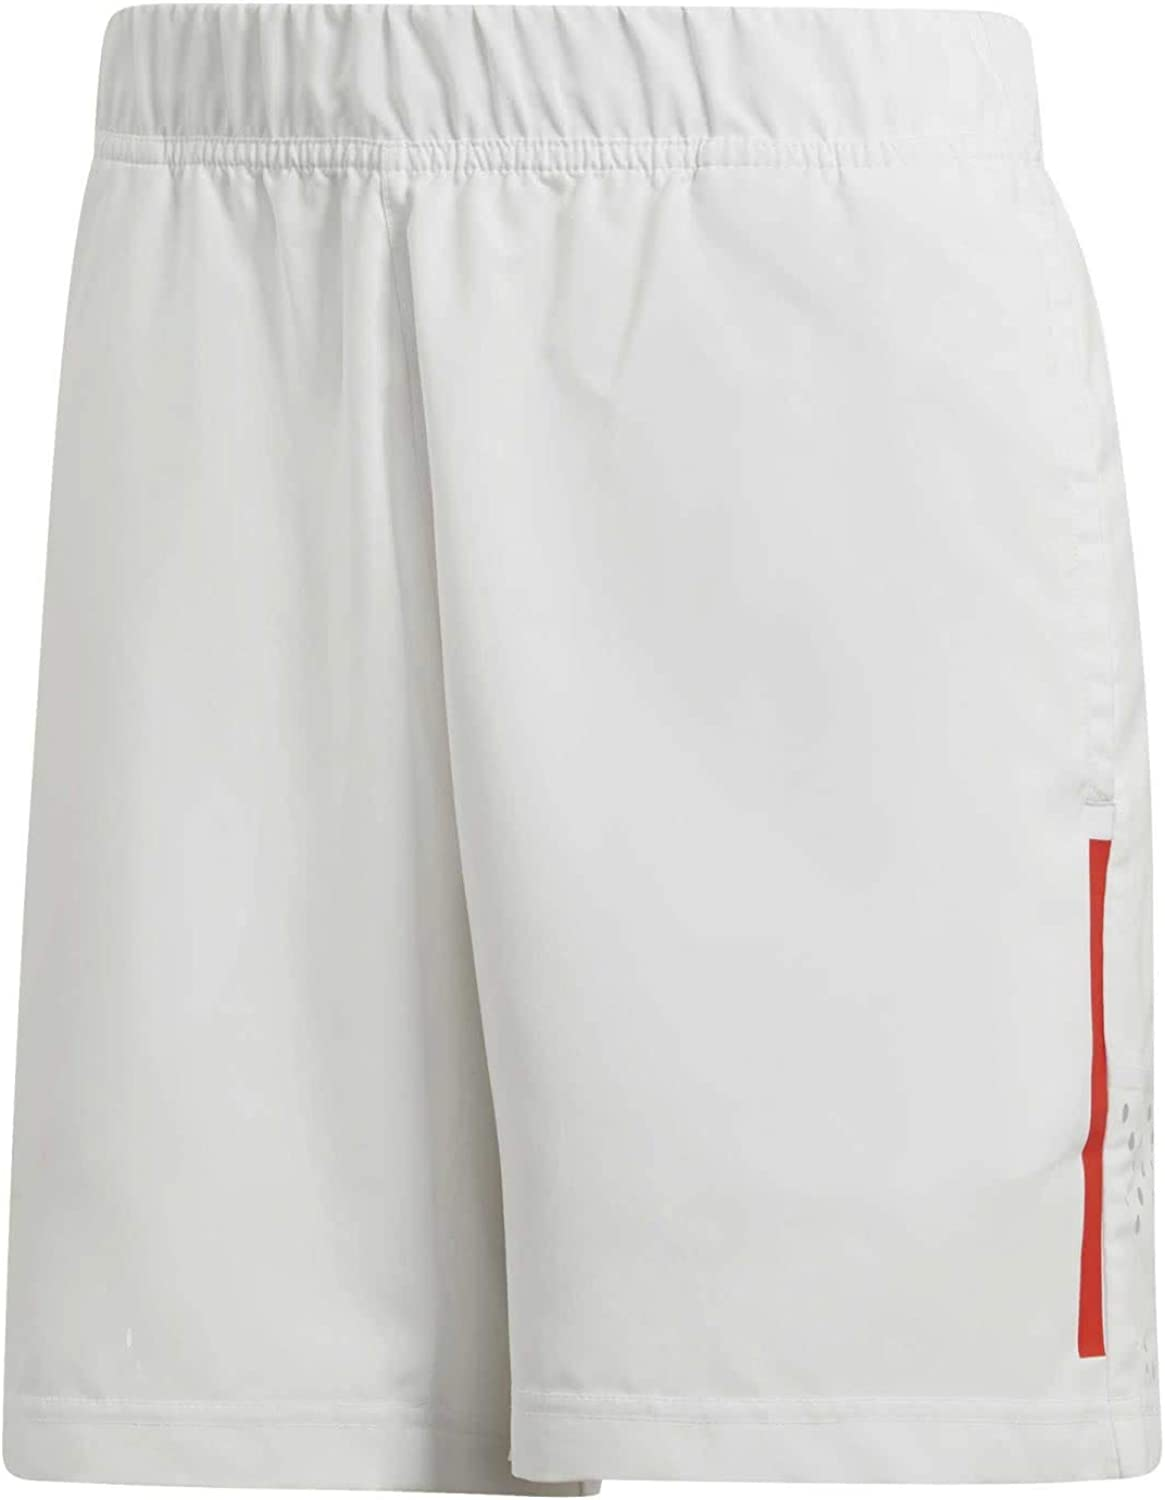 Adidas Herren Tennis Short Stella McCartney Court